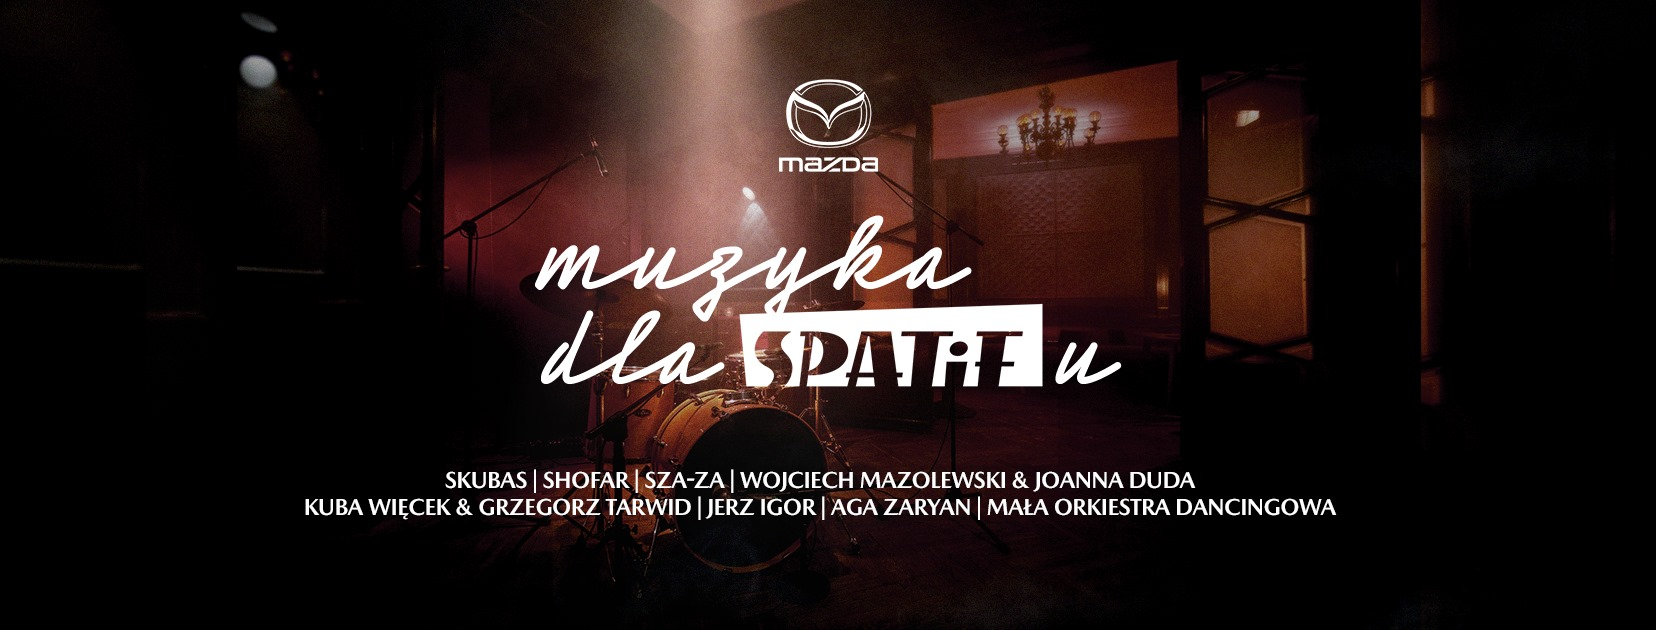 Going. | Muzyka dla SPATiFu powered by Mazda #WMoimStylu